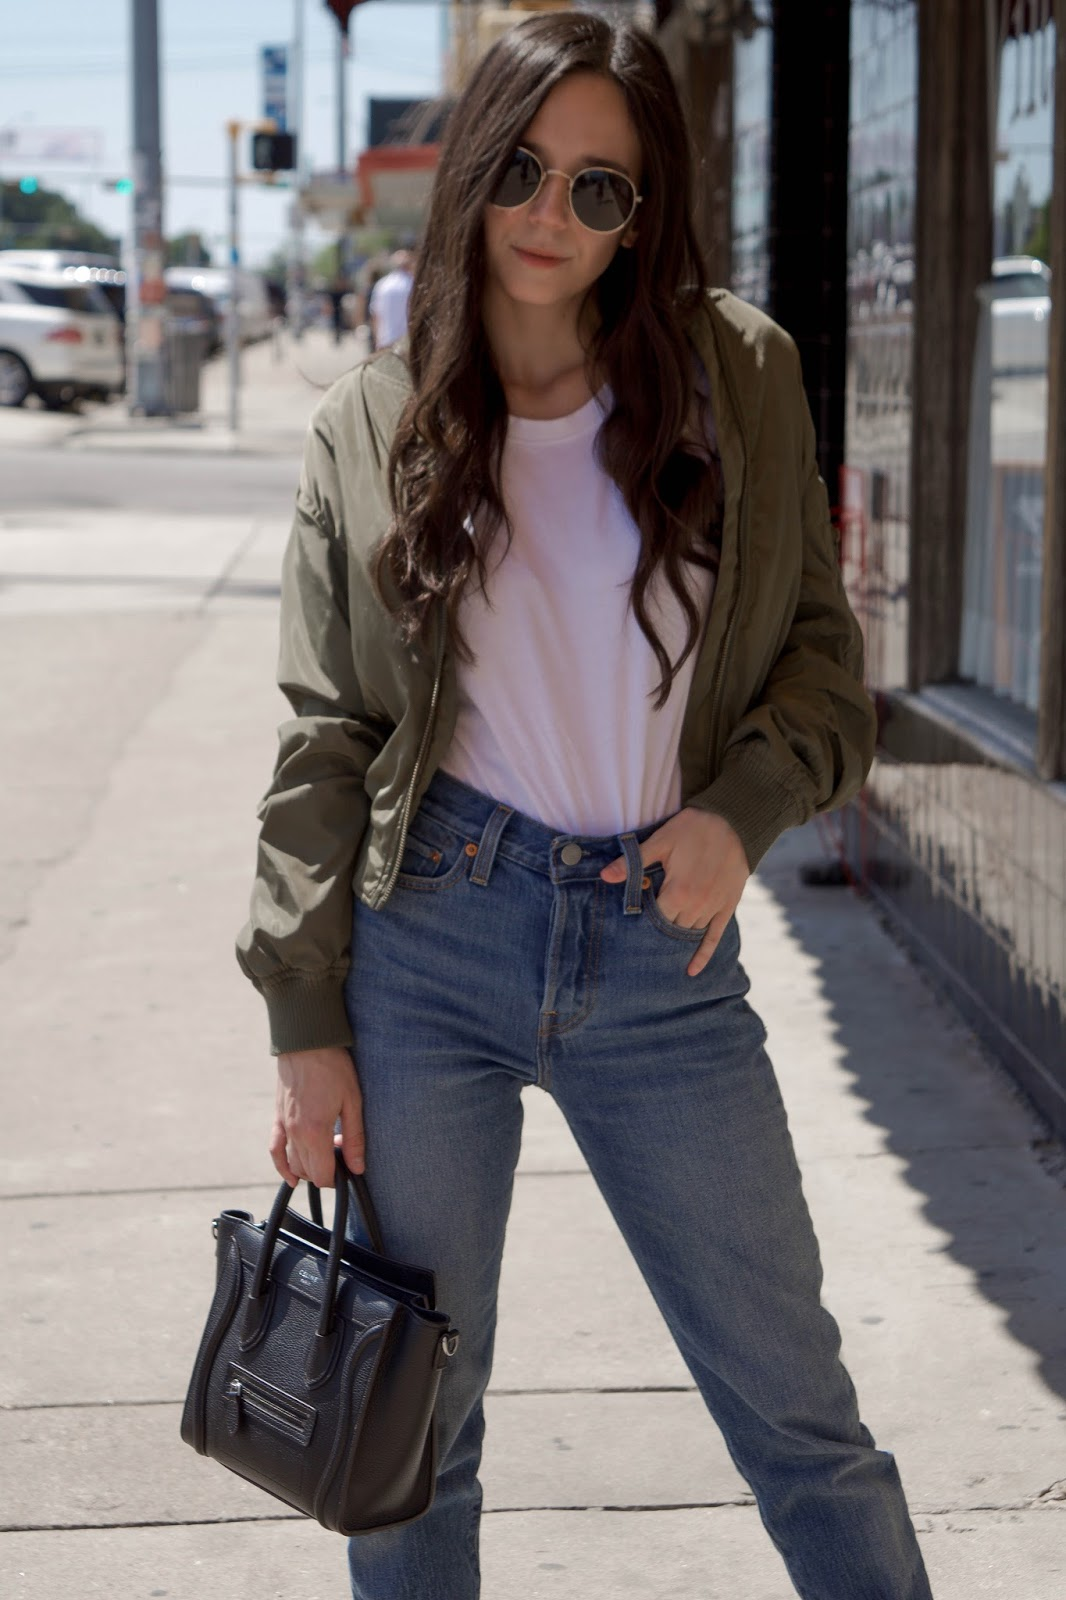 How to style a bomber jacket?